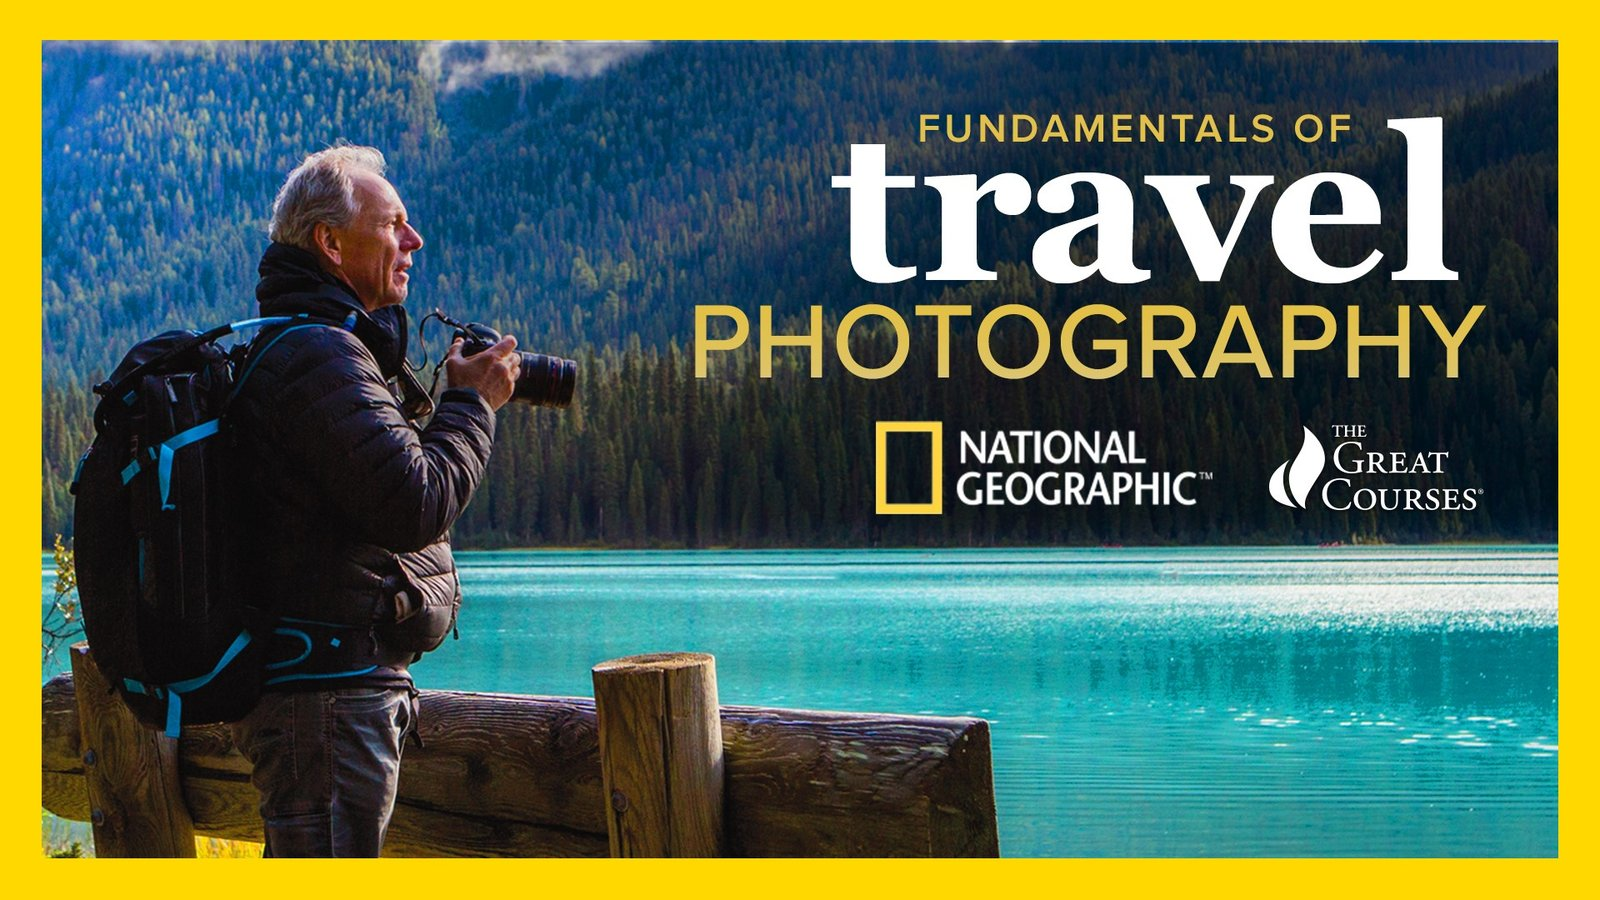 The Fundamentals of Travel Photography